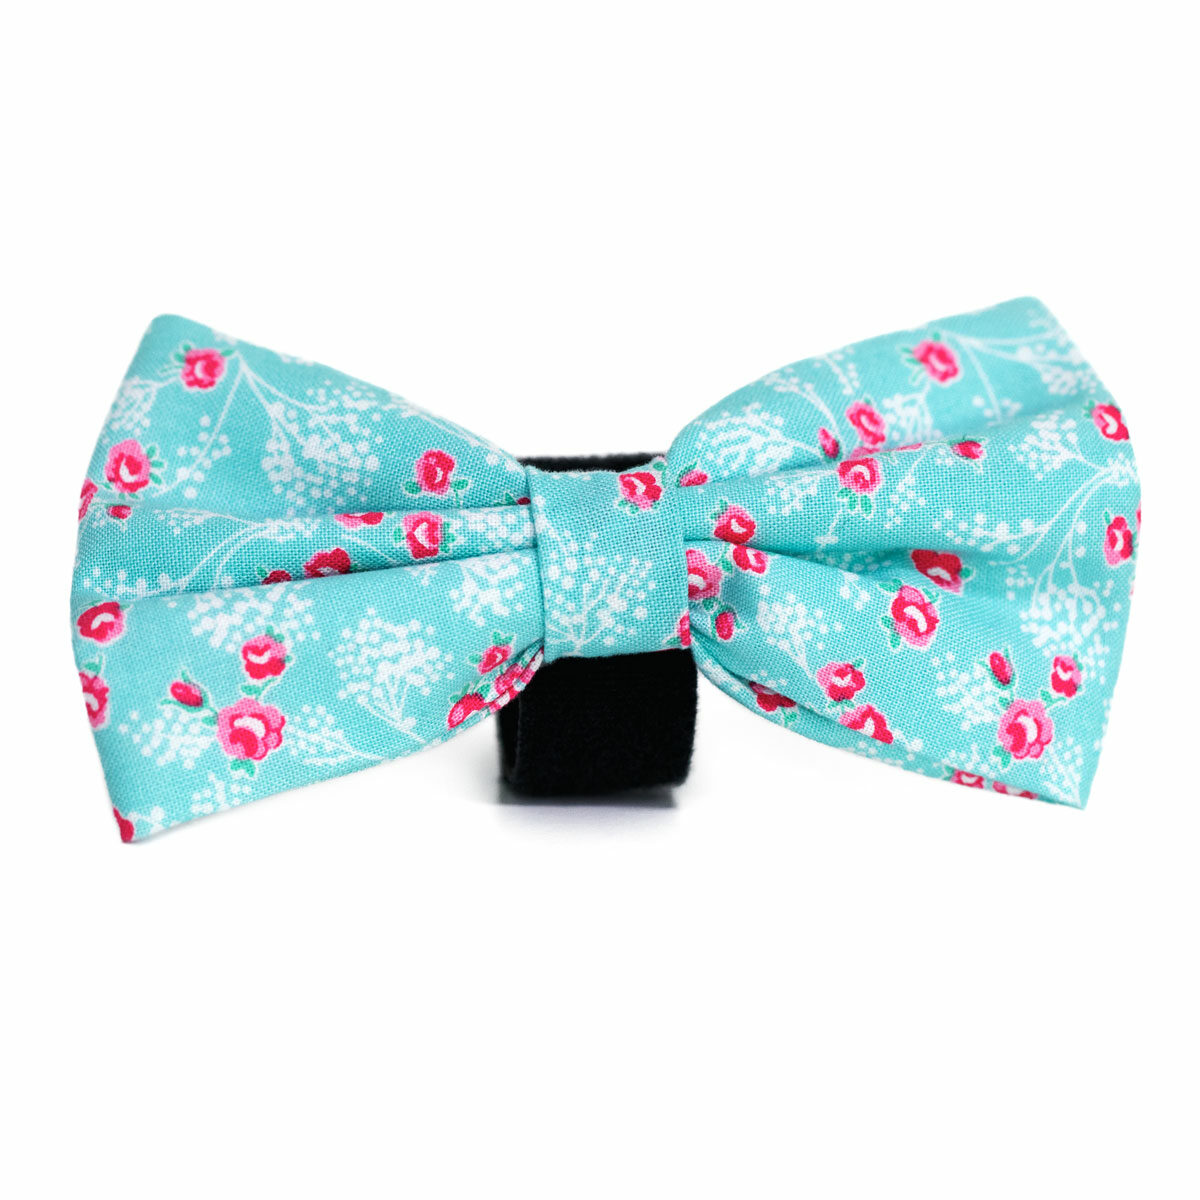 Hala's Paws Bow Tie Turquoise with Pink Flowers